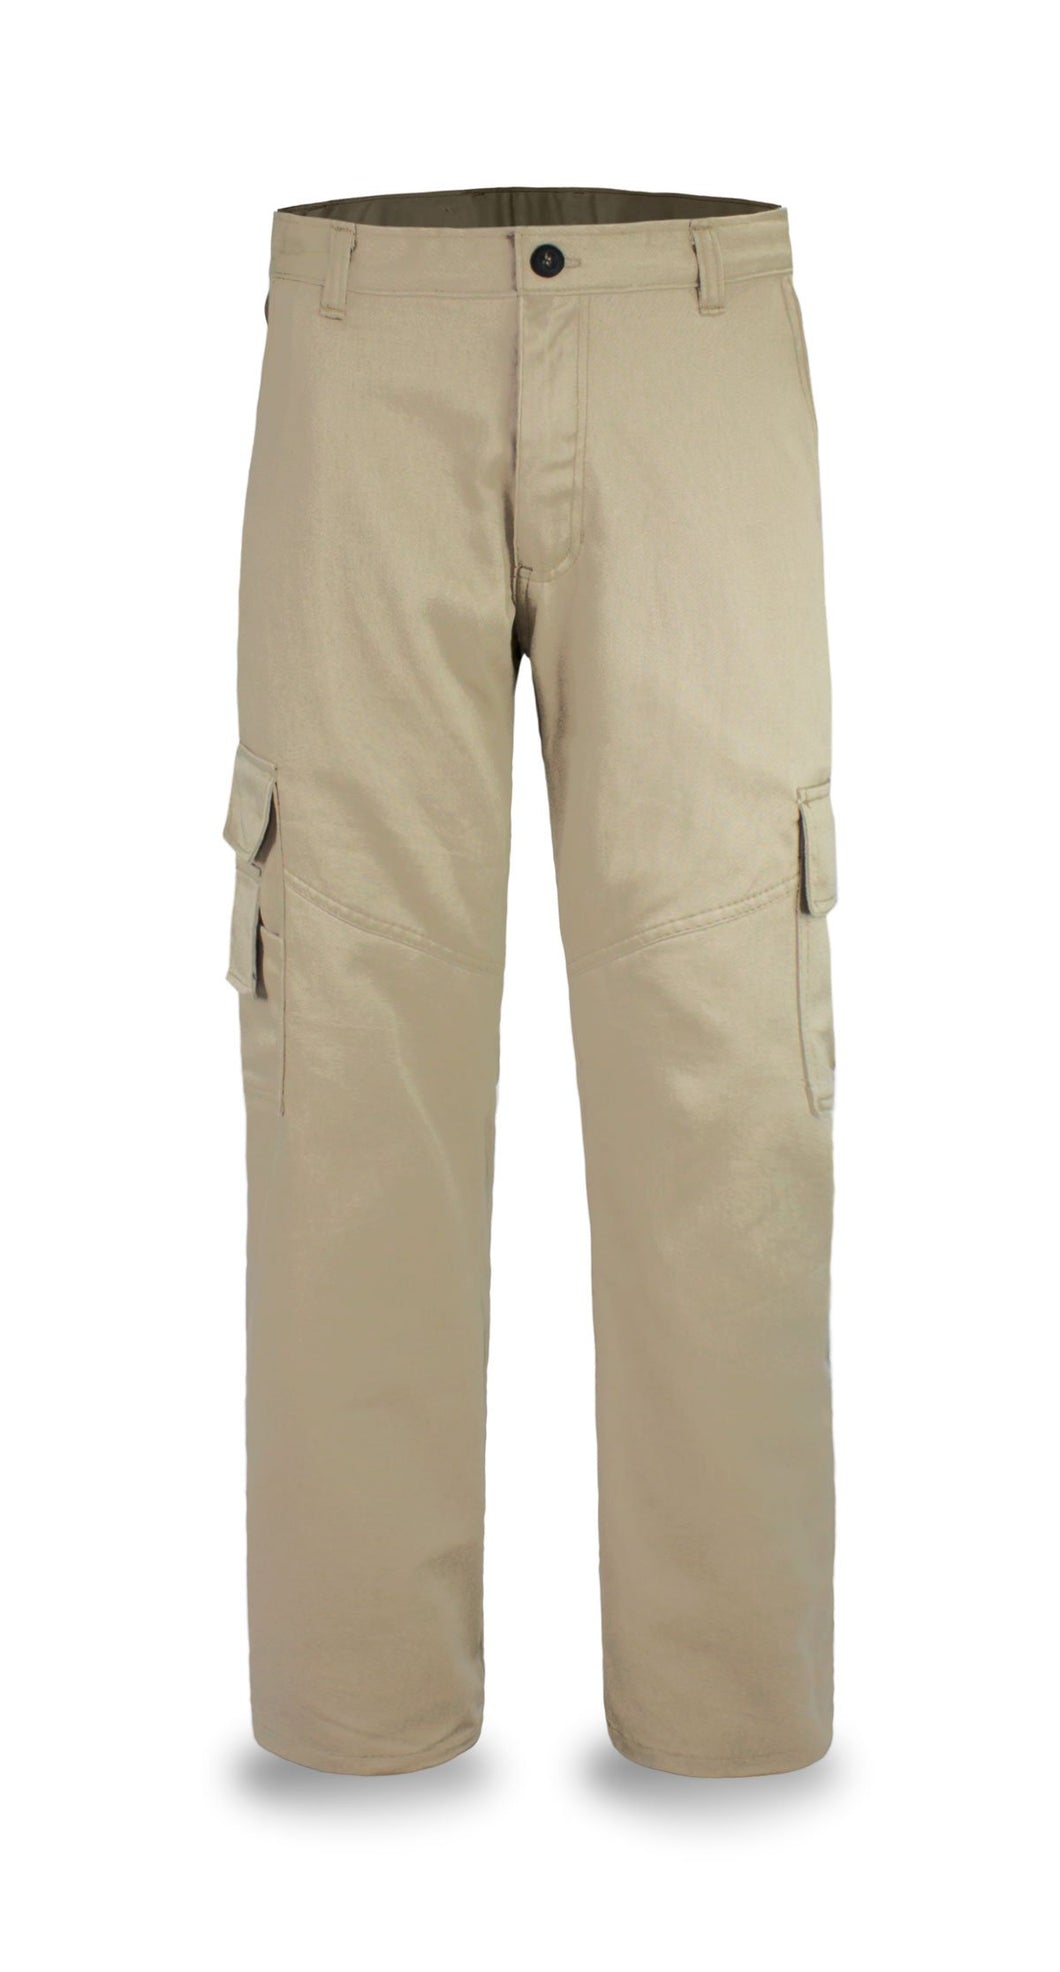 KP02 - Kolossus Original Fit 100% Cotton Utility Work Pant with Multipurpose Pockets